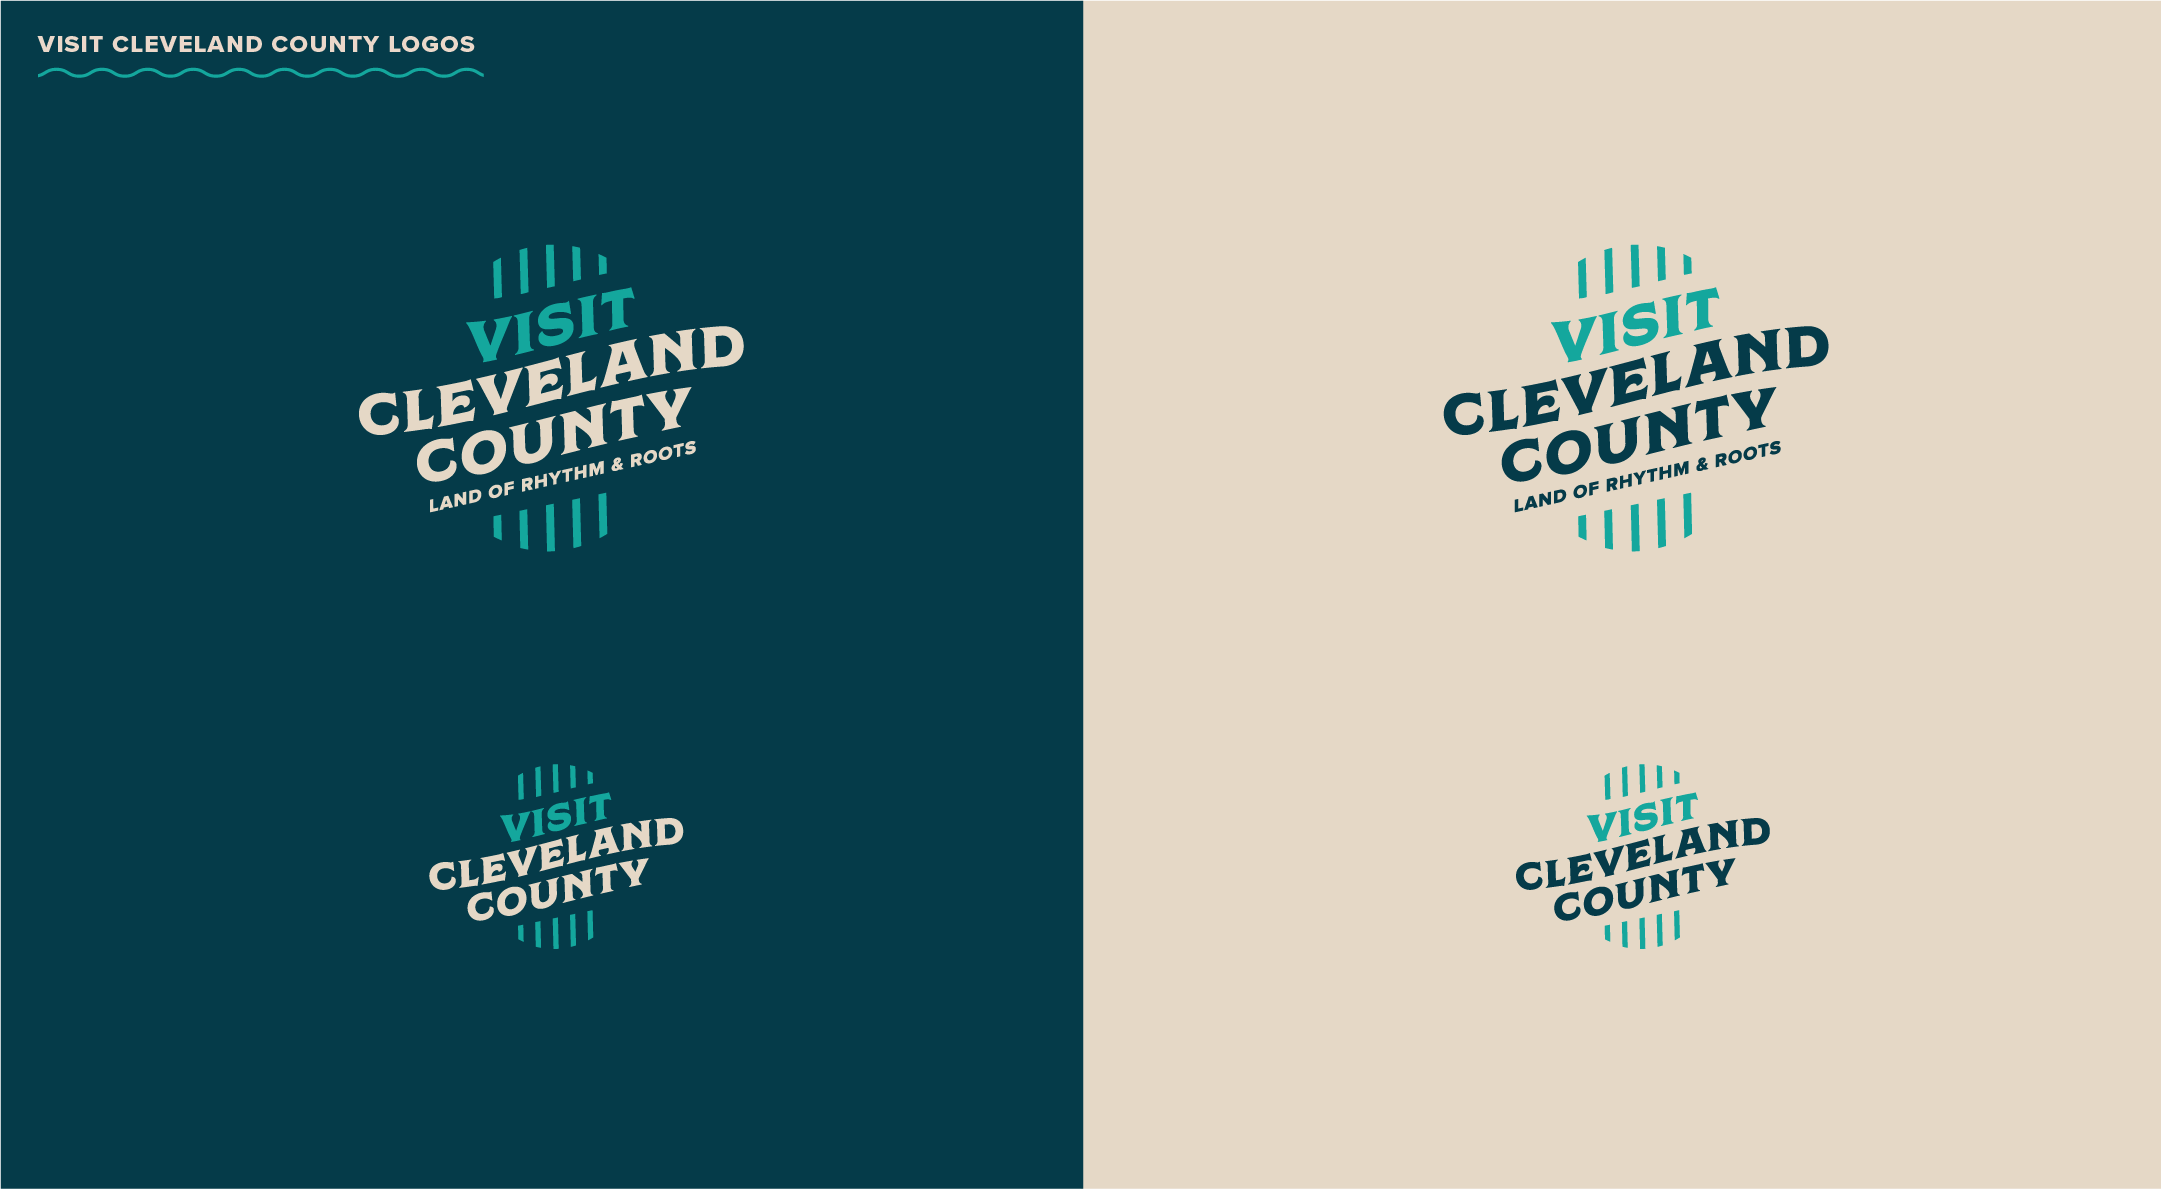 visit Cleveland County logos